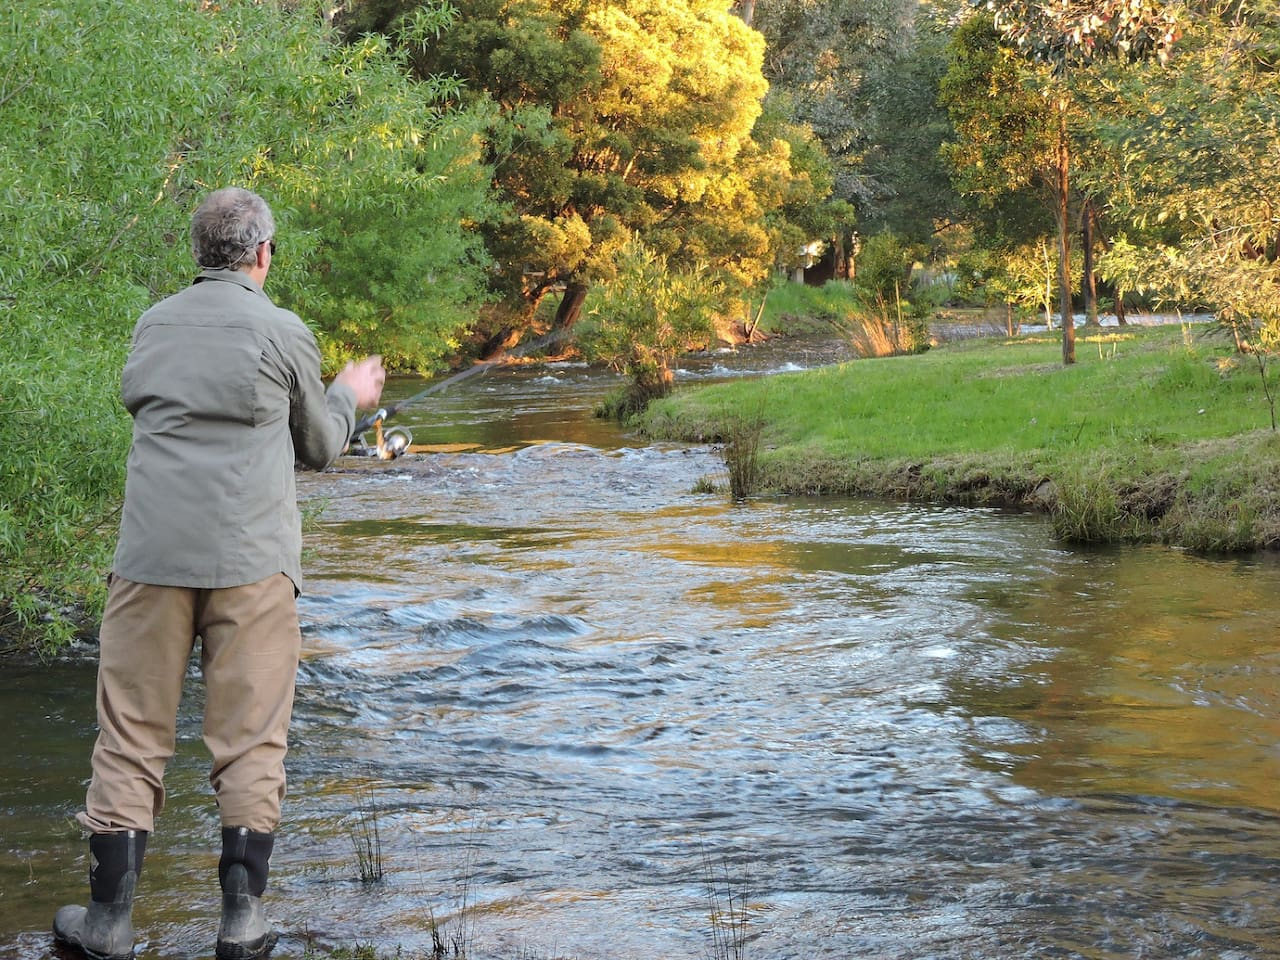 Fishing in the river as it flows past the property.